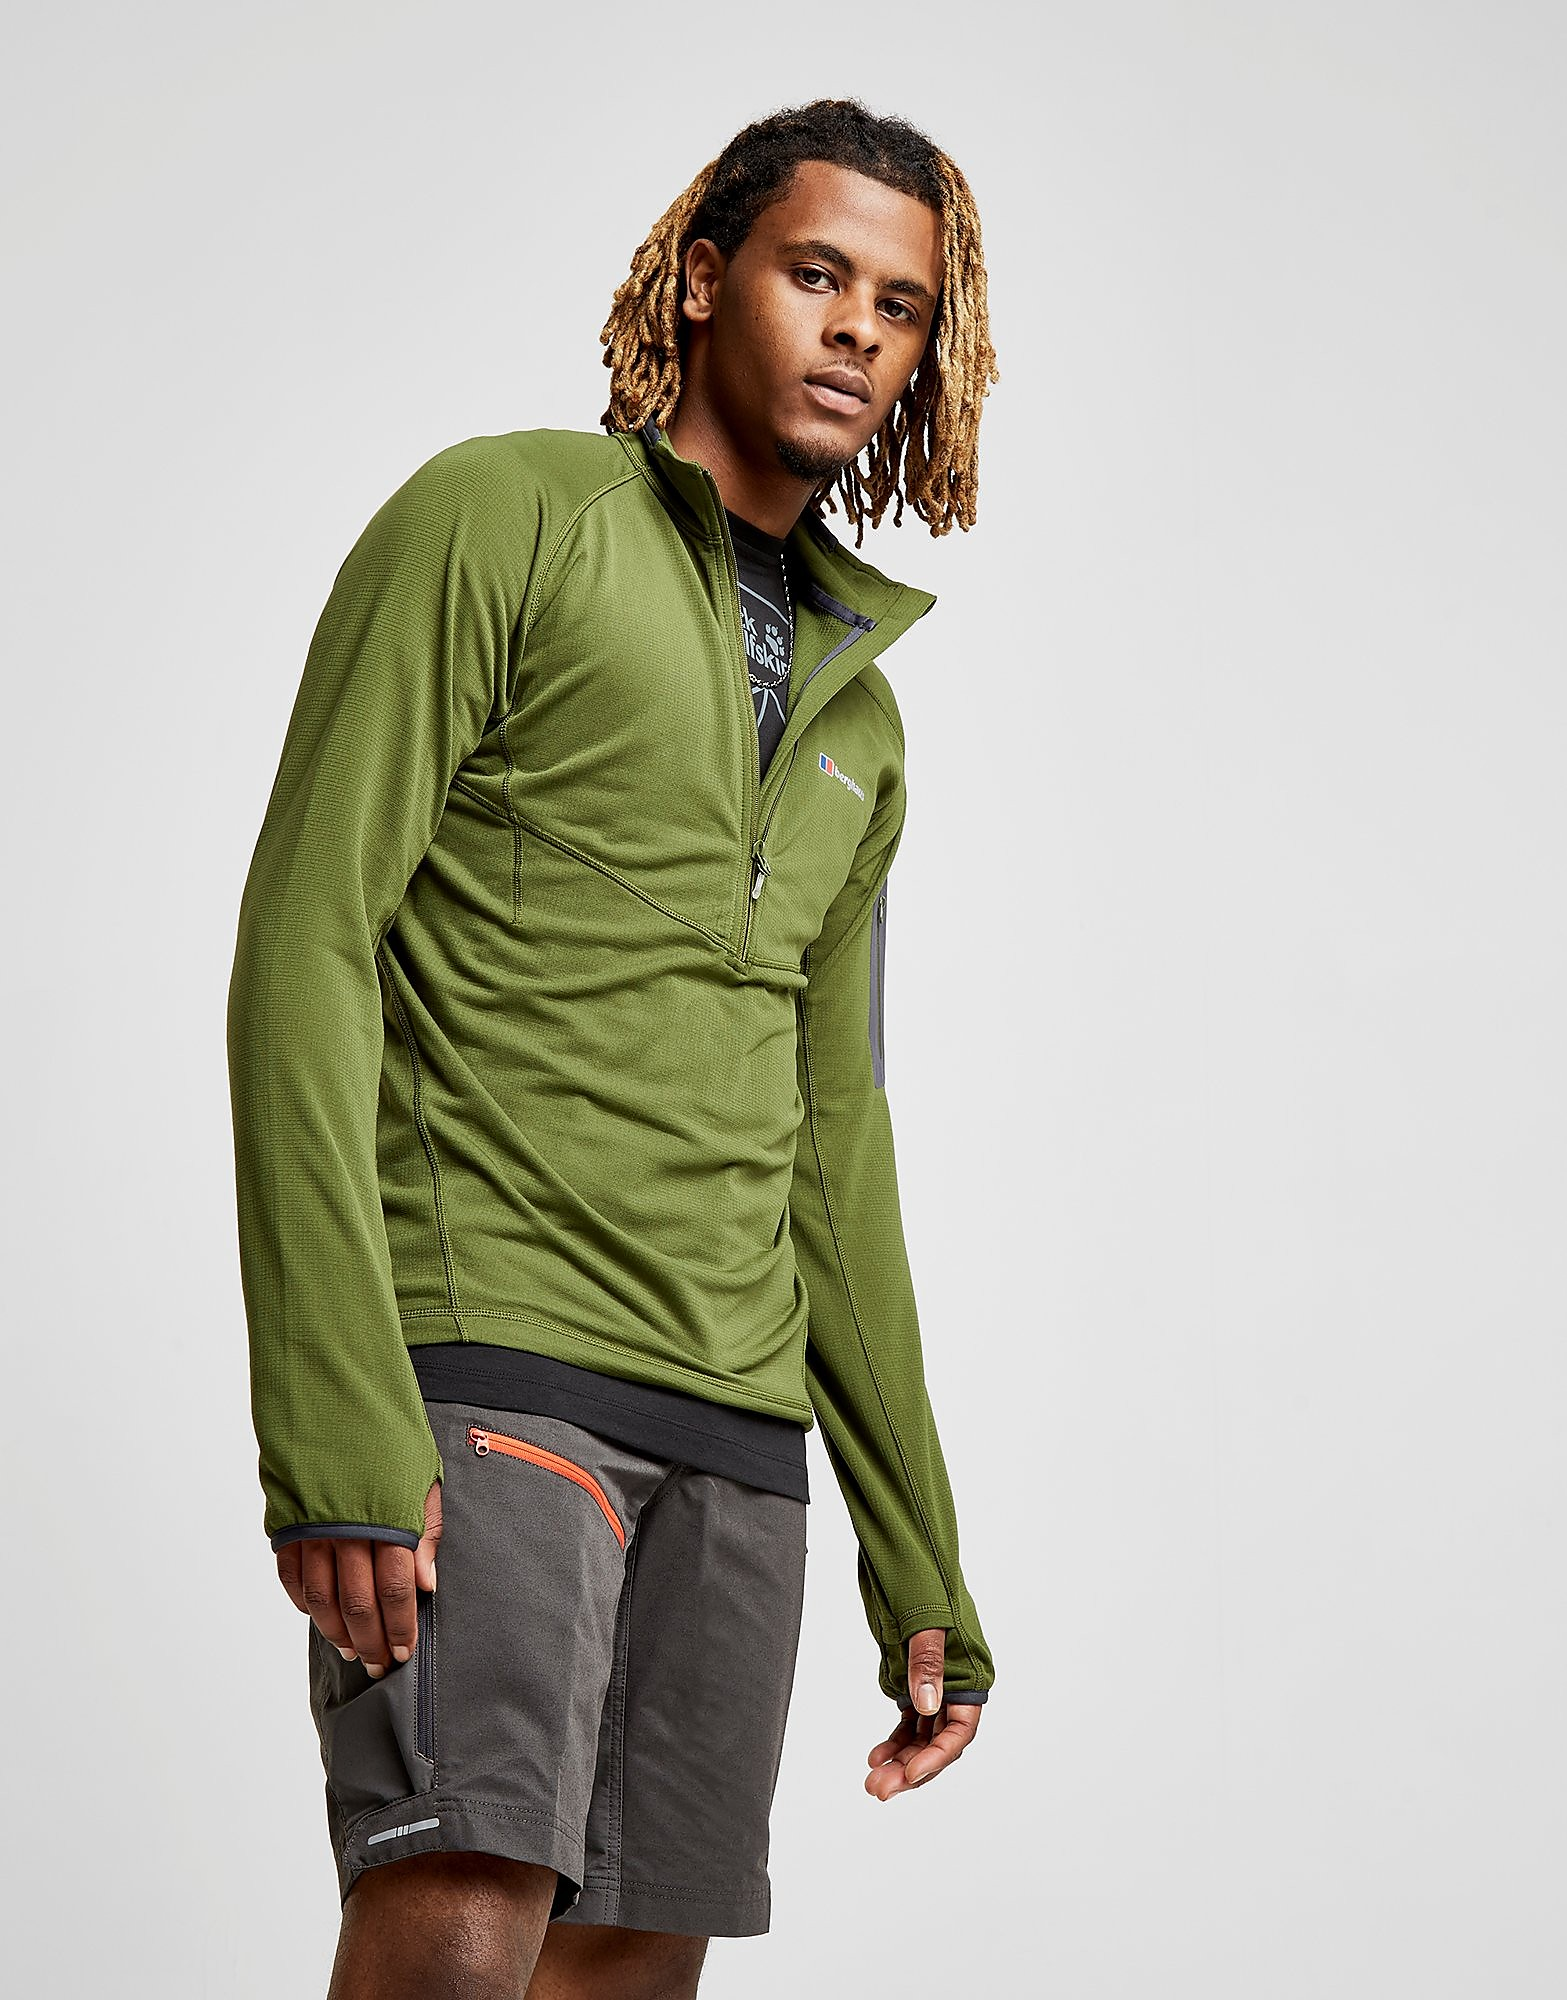 Berghaus Pravitale Pull-On 1/2 Zip Top